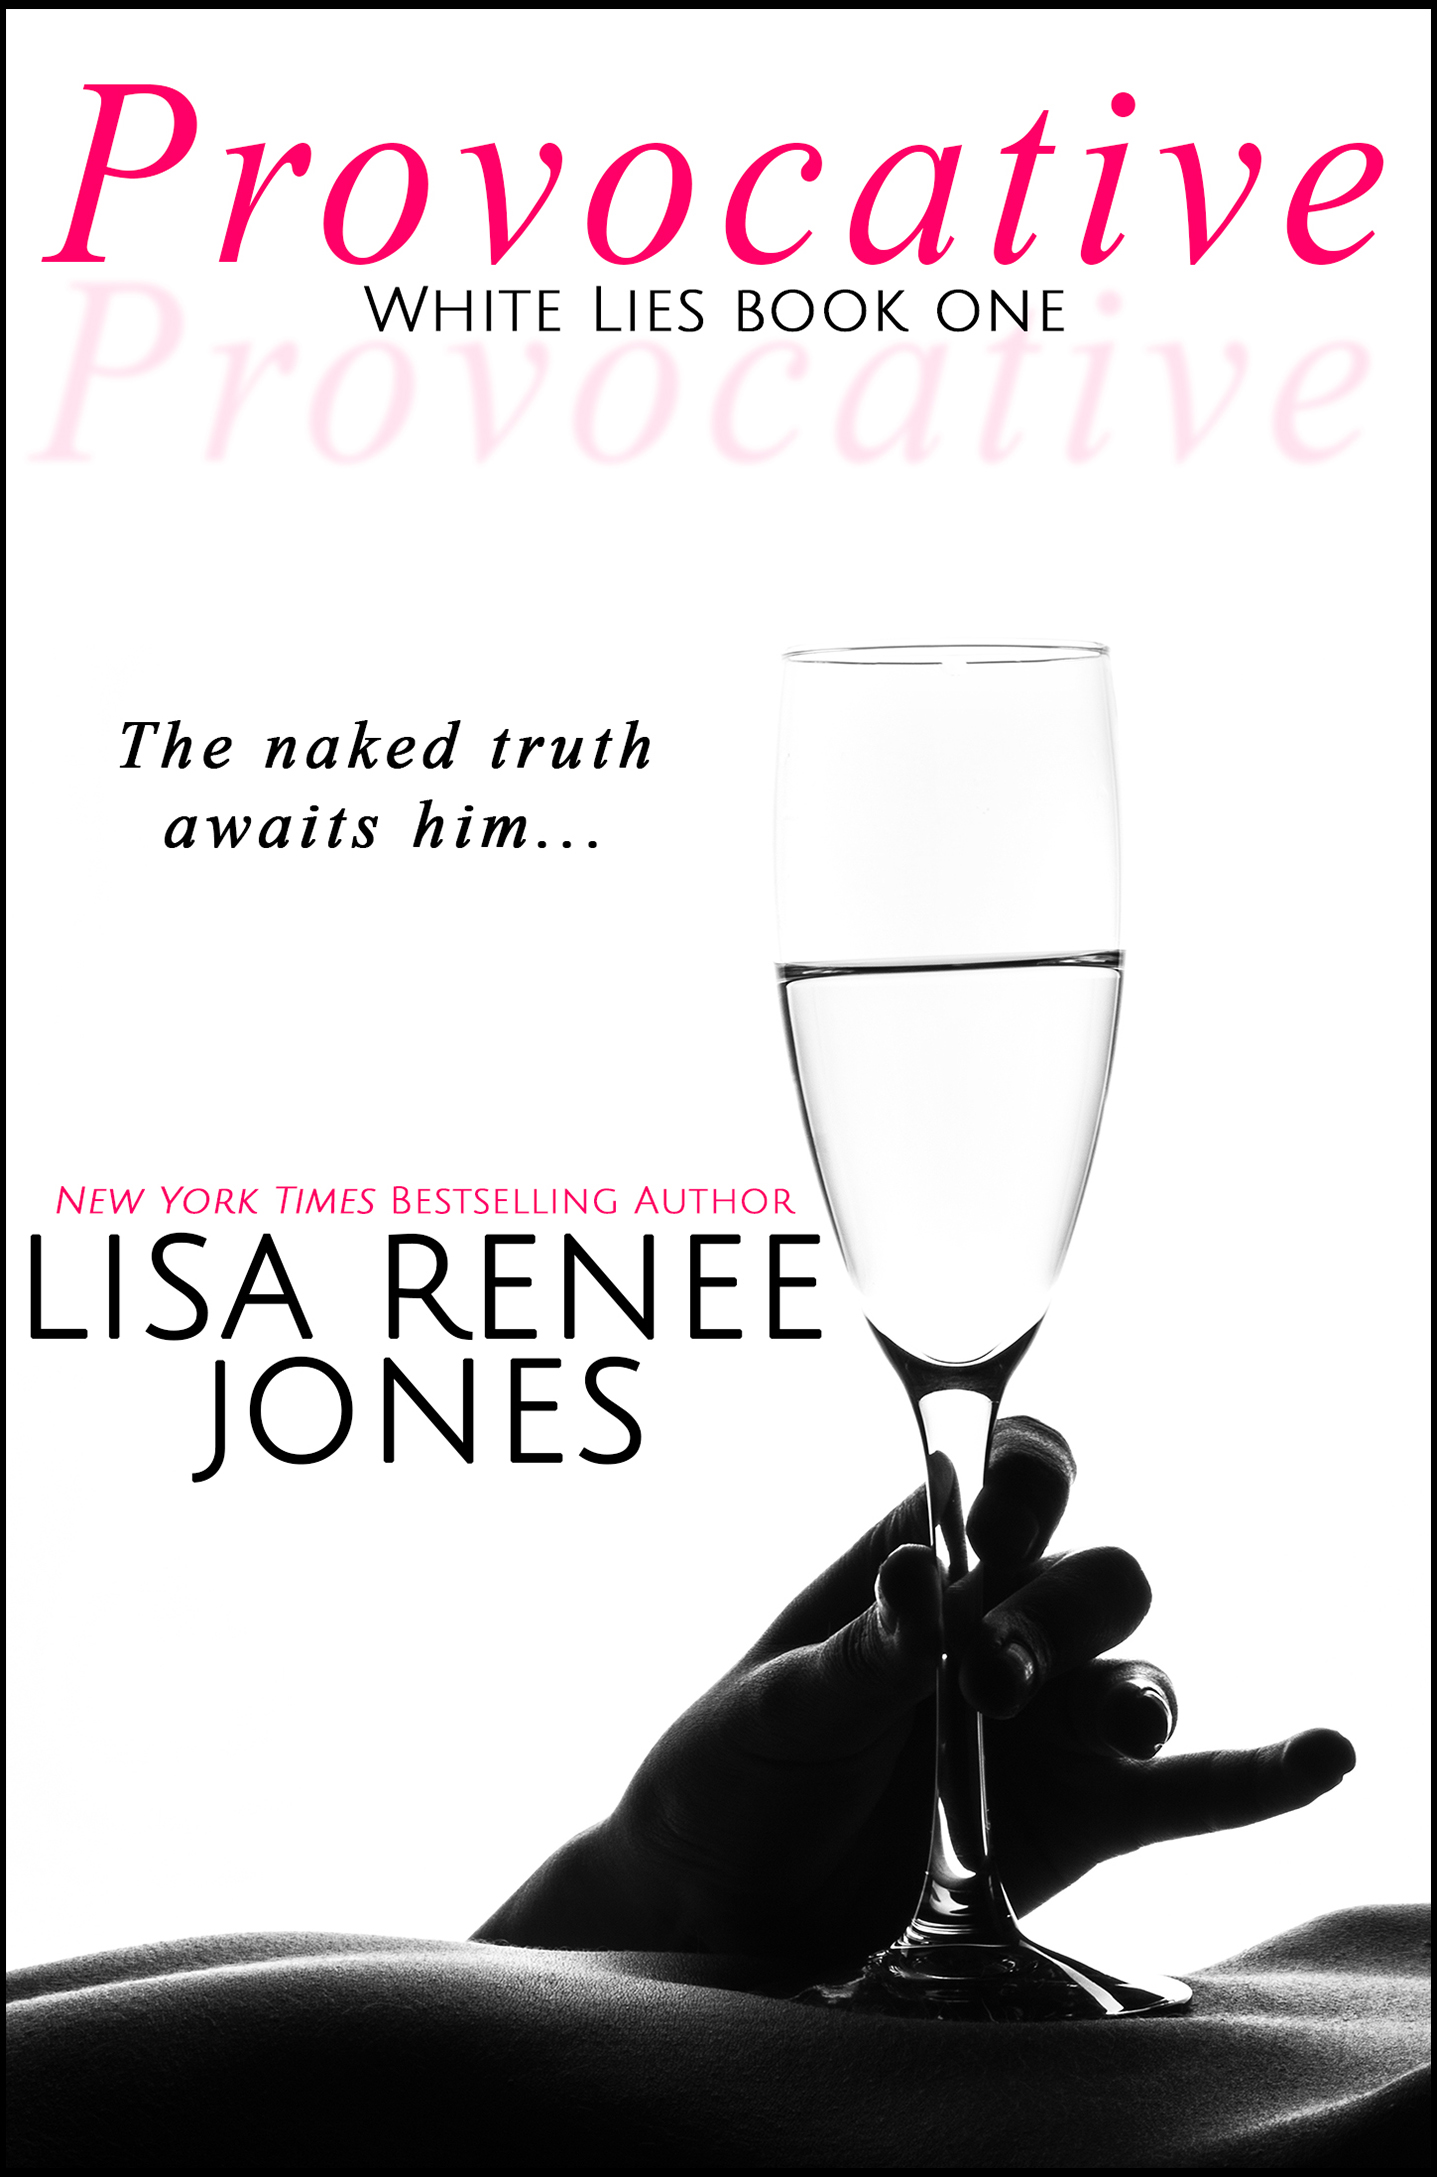 Provocative - Lisa Renee Jones